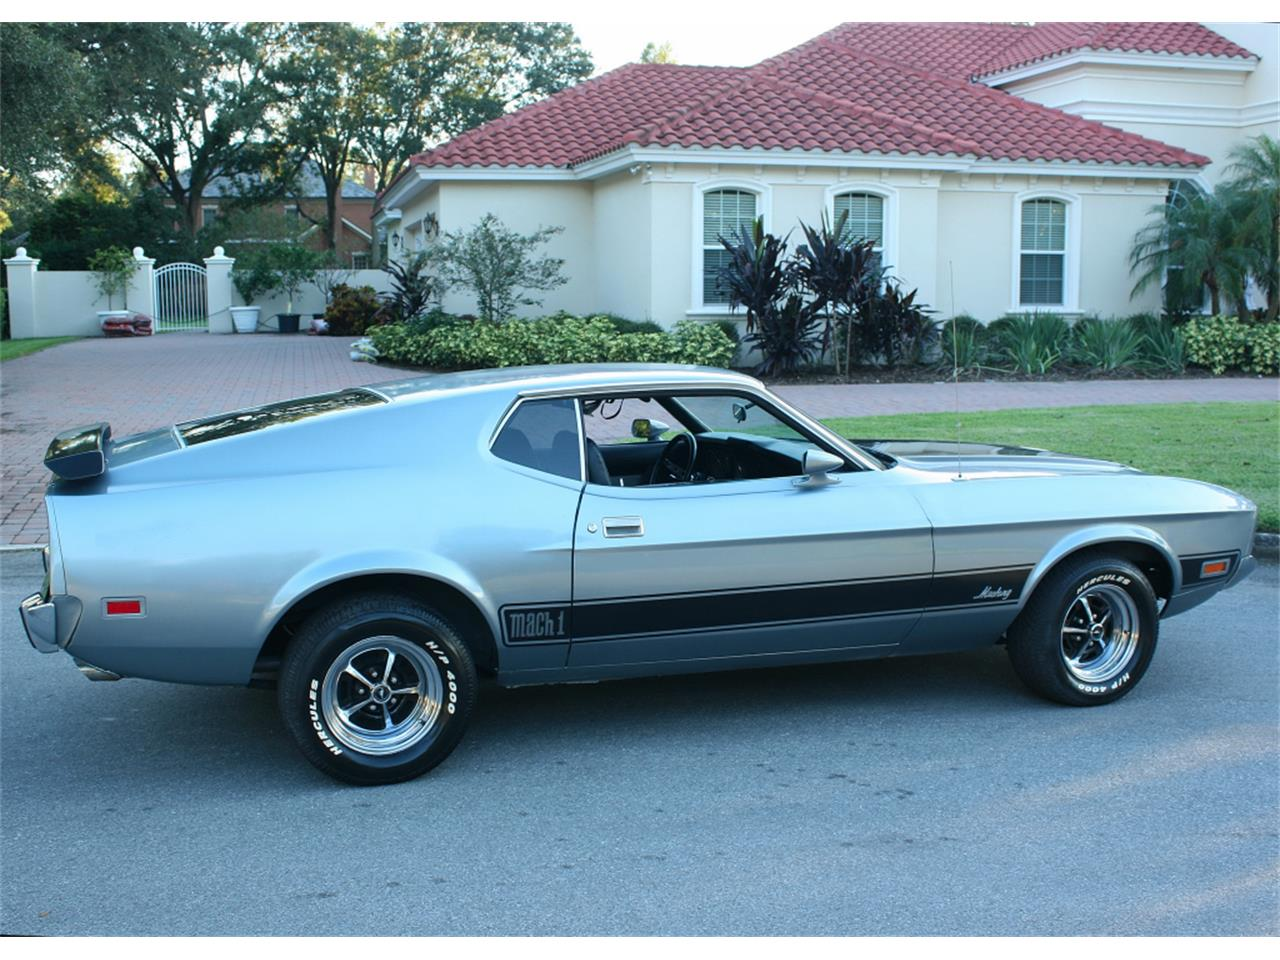 Large Picture of '73 Mustang located in Lakeland Florida - MA11